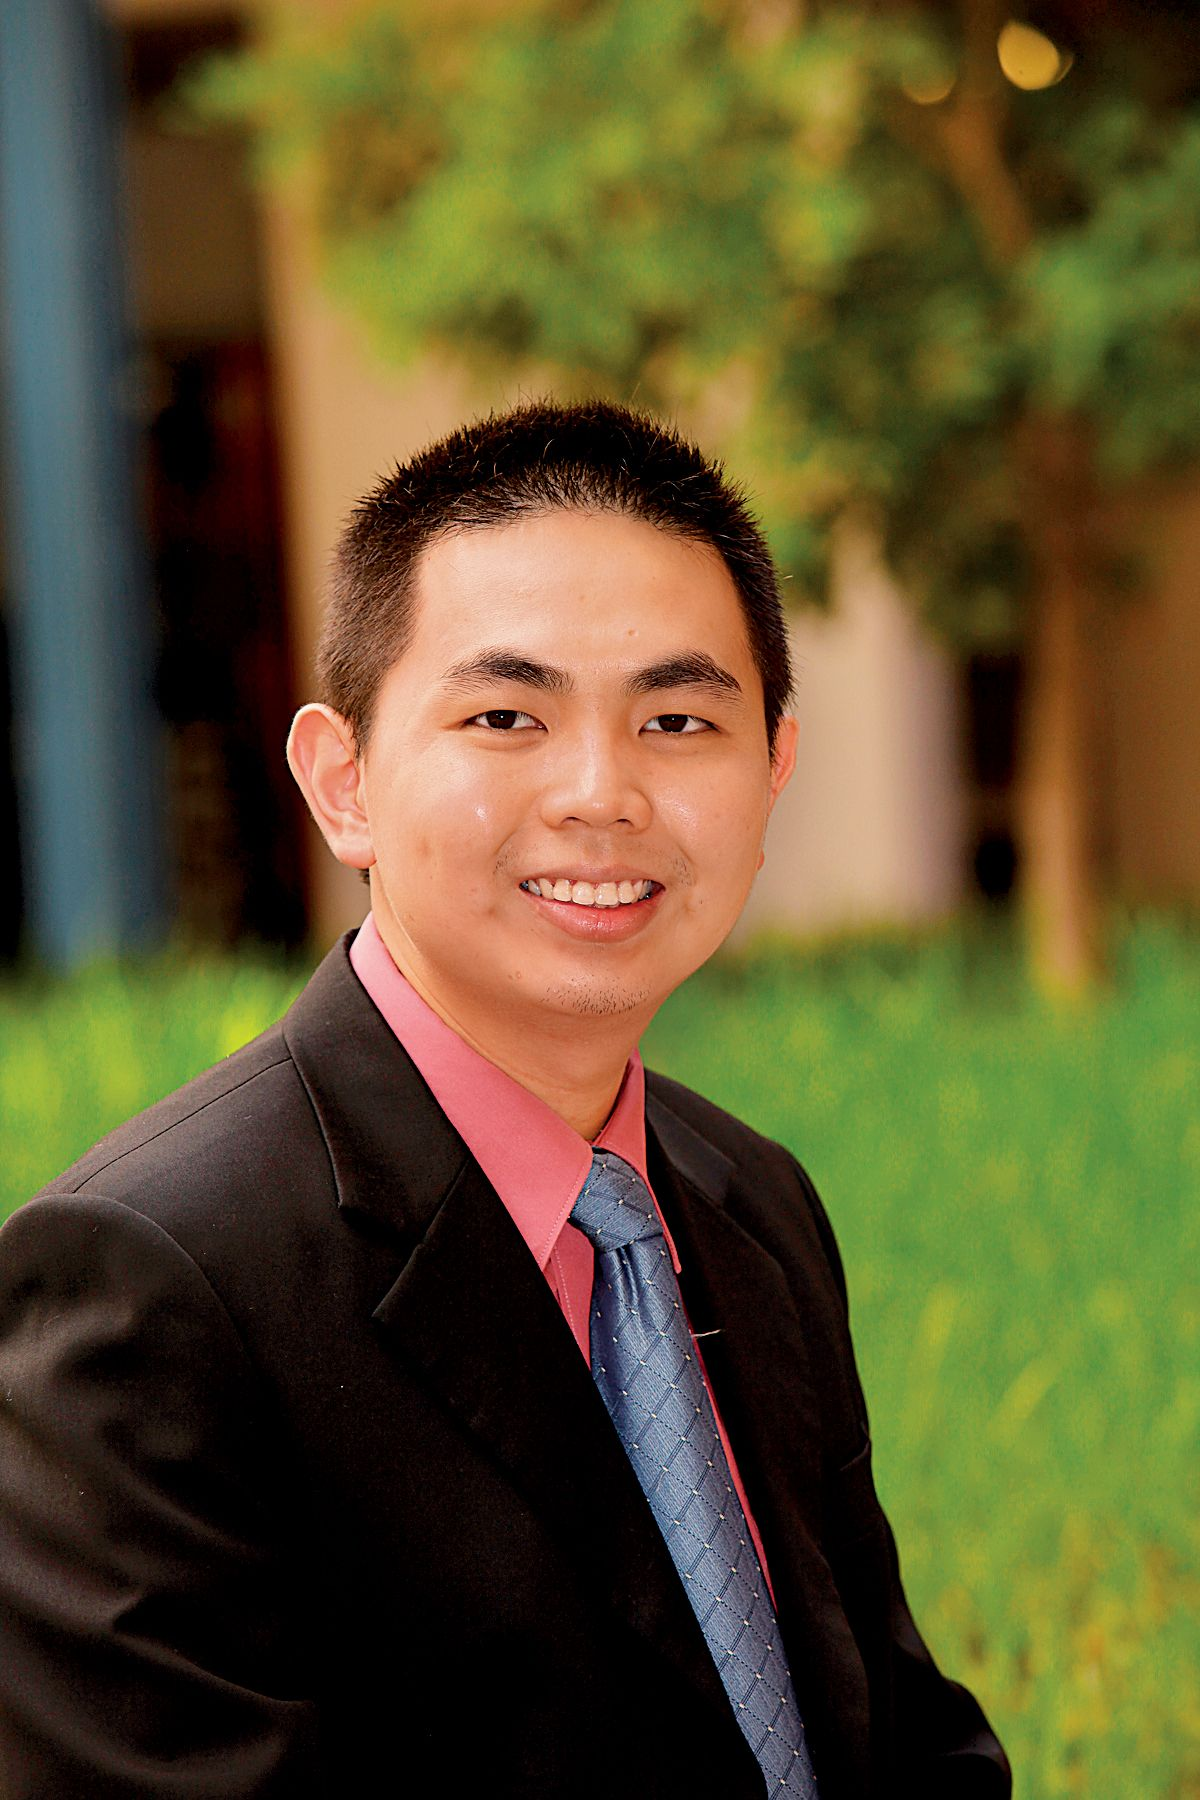 An illustrious Dip Bus graduate, Dr Kelvin Tan is currently associate professor of finance at the University of Queensland.